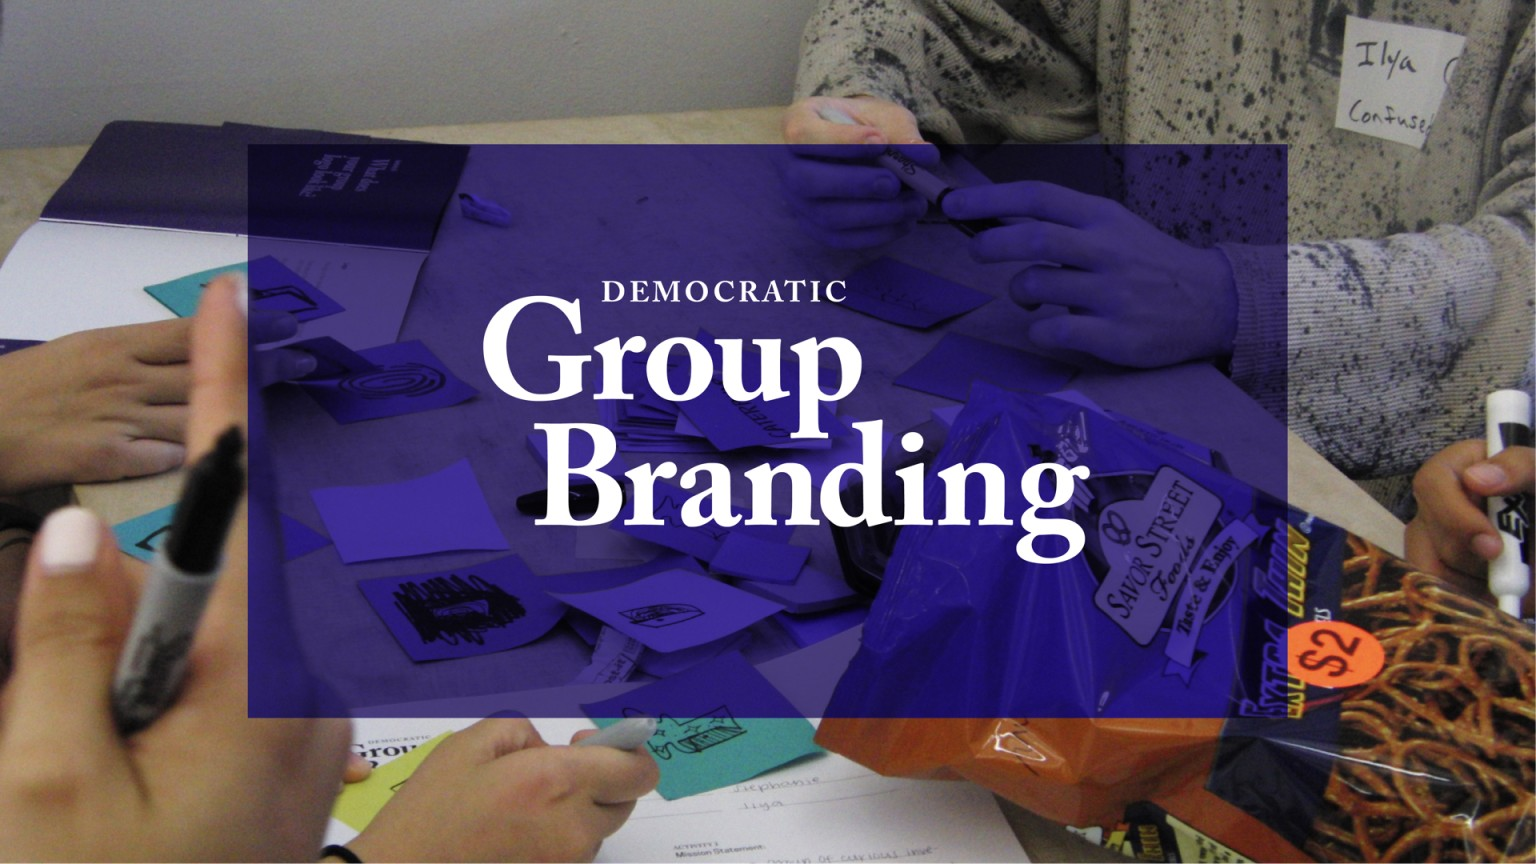 Democratic Group Branding